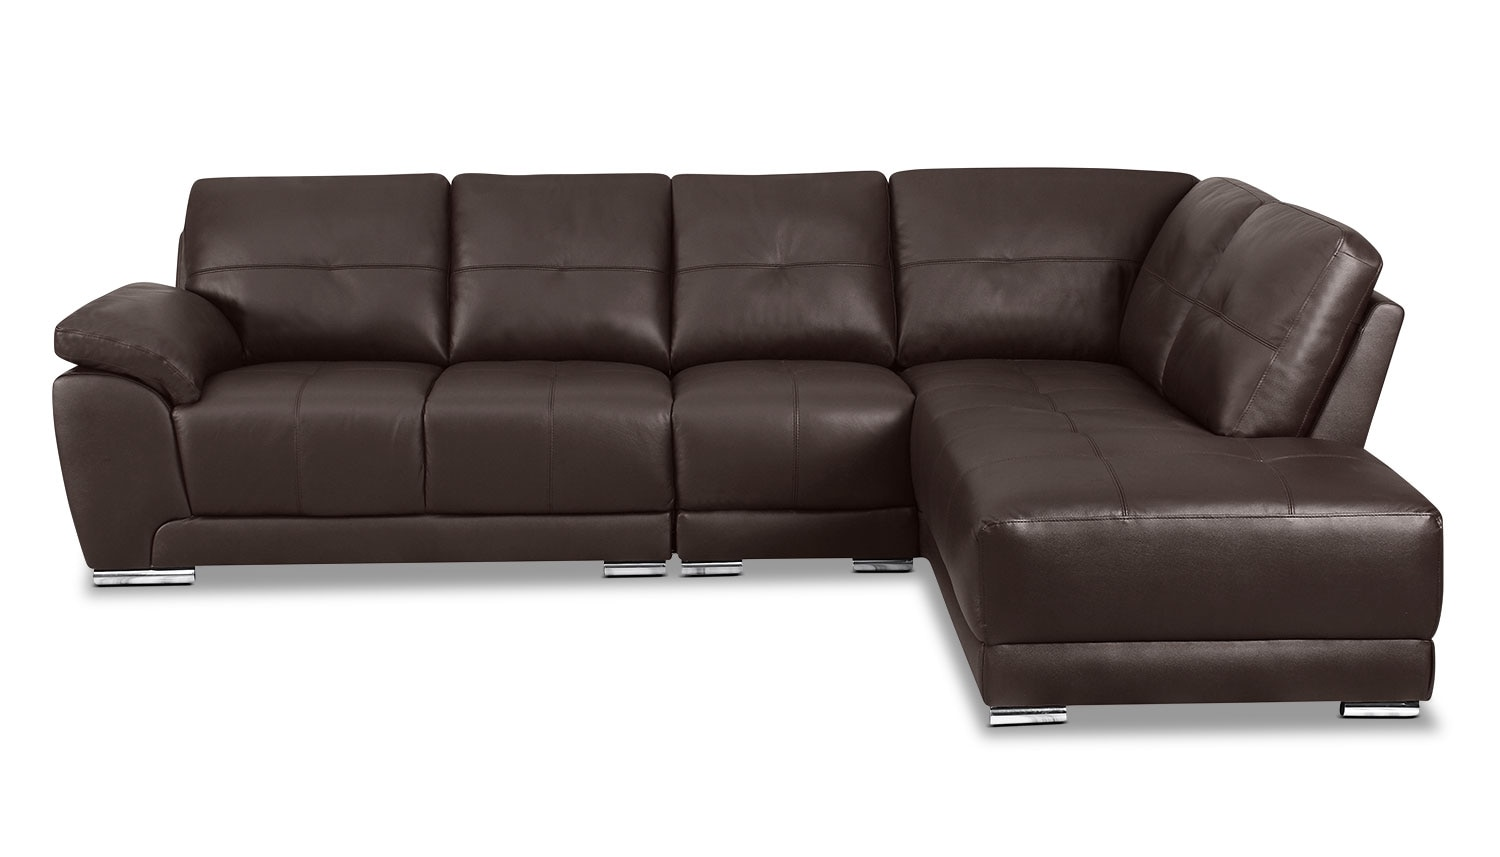 Rylee 3 piece genuine leather right facing sectional for Leather sectional sofa bed canada